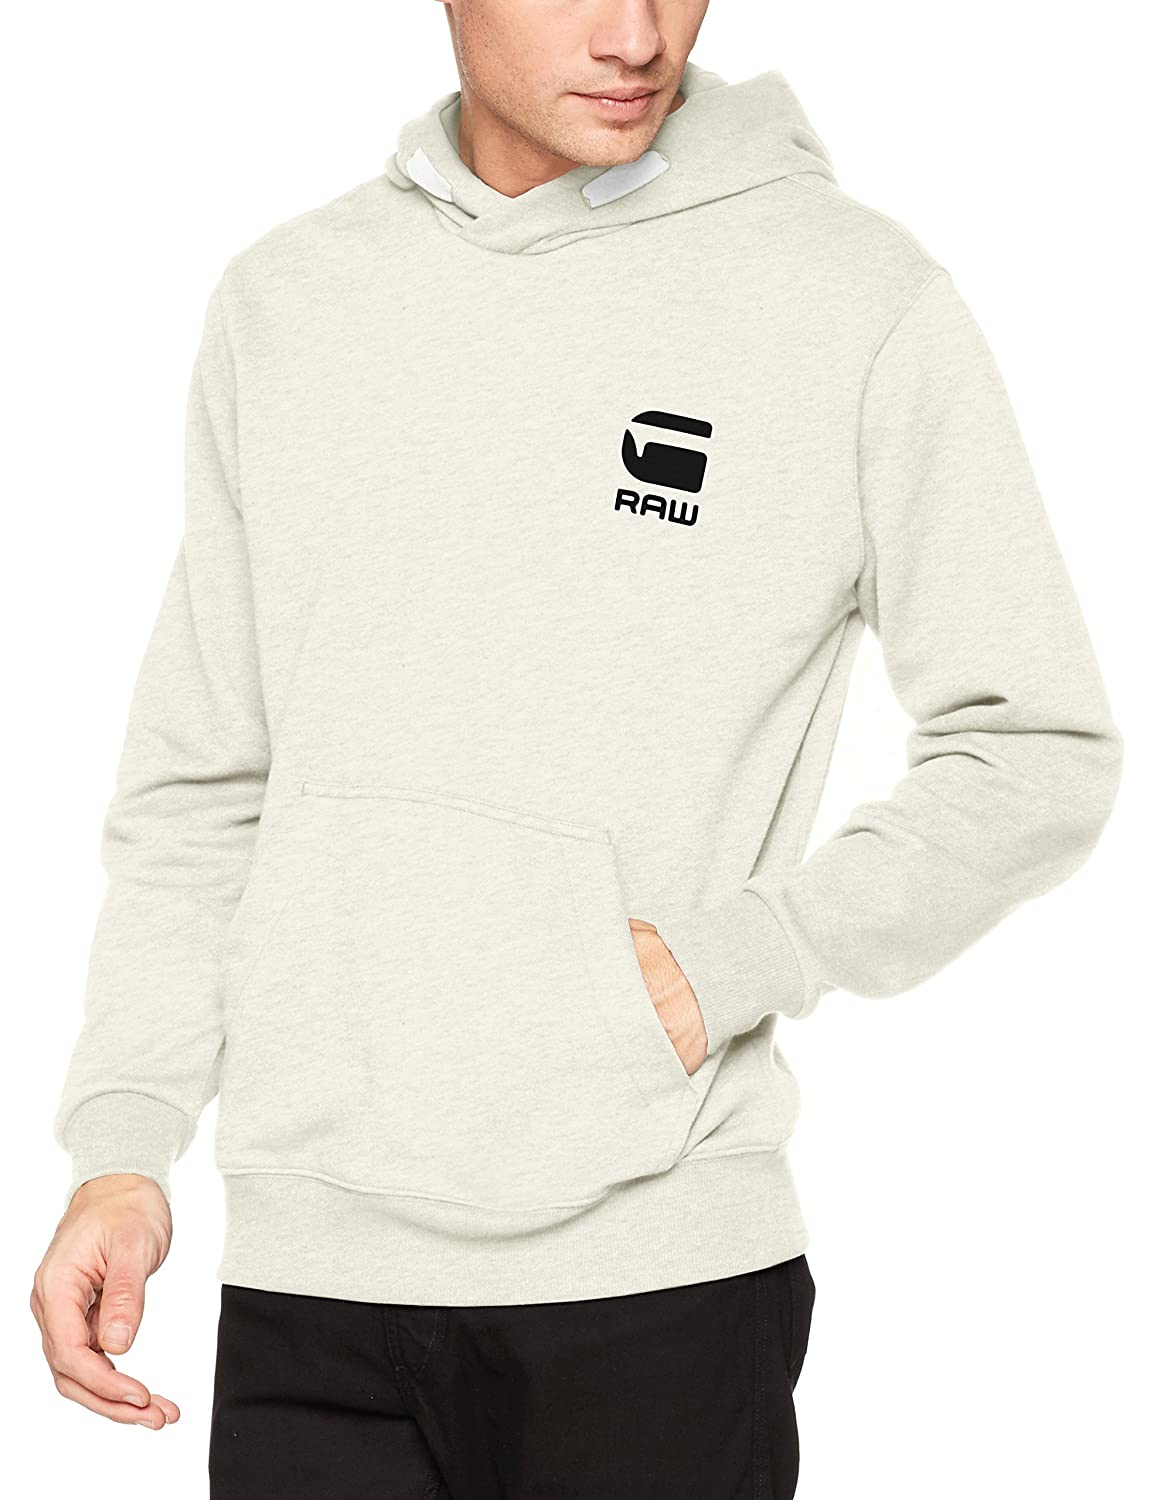 Doax Hooded Sw L/s, Capucha para Hombre, Blanco (White Htr 129), XX-Large G-Star